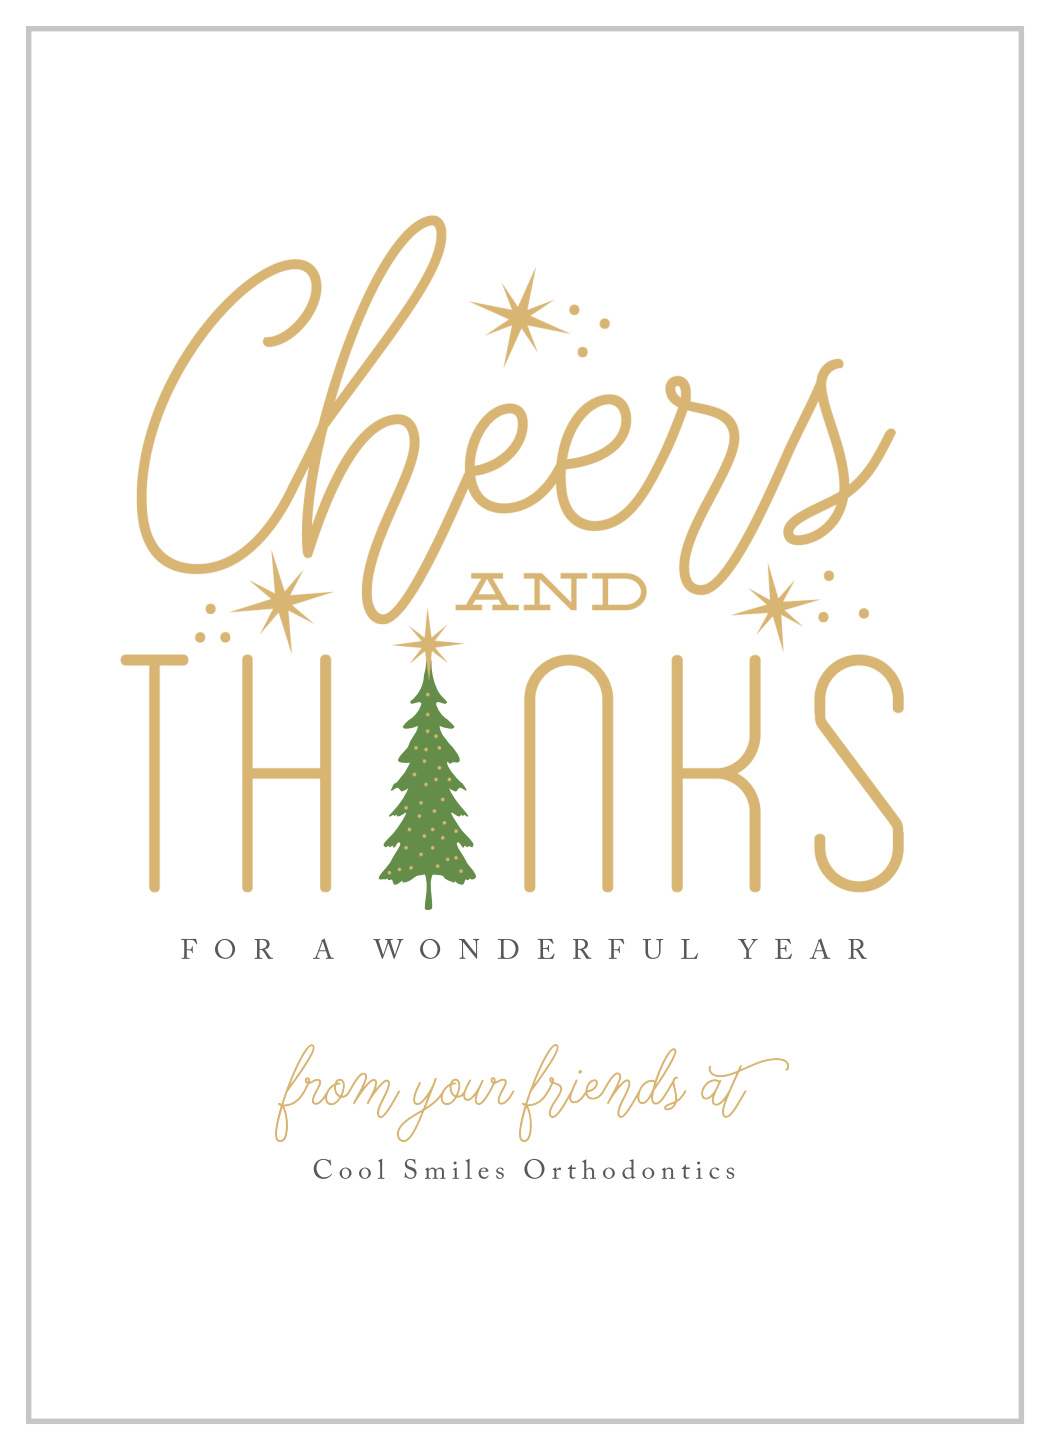 Cheers Thanks Corporate Christmas Cards By Basic Invite